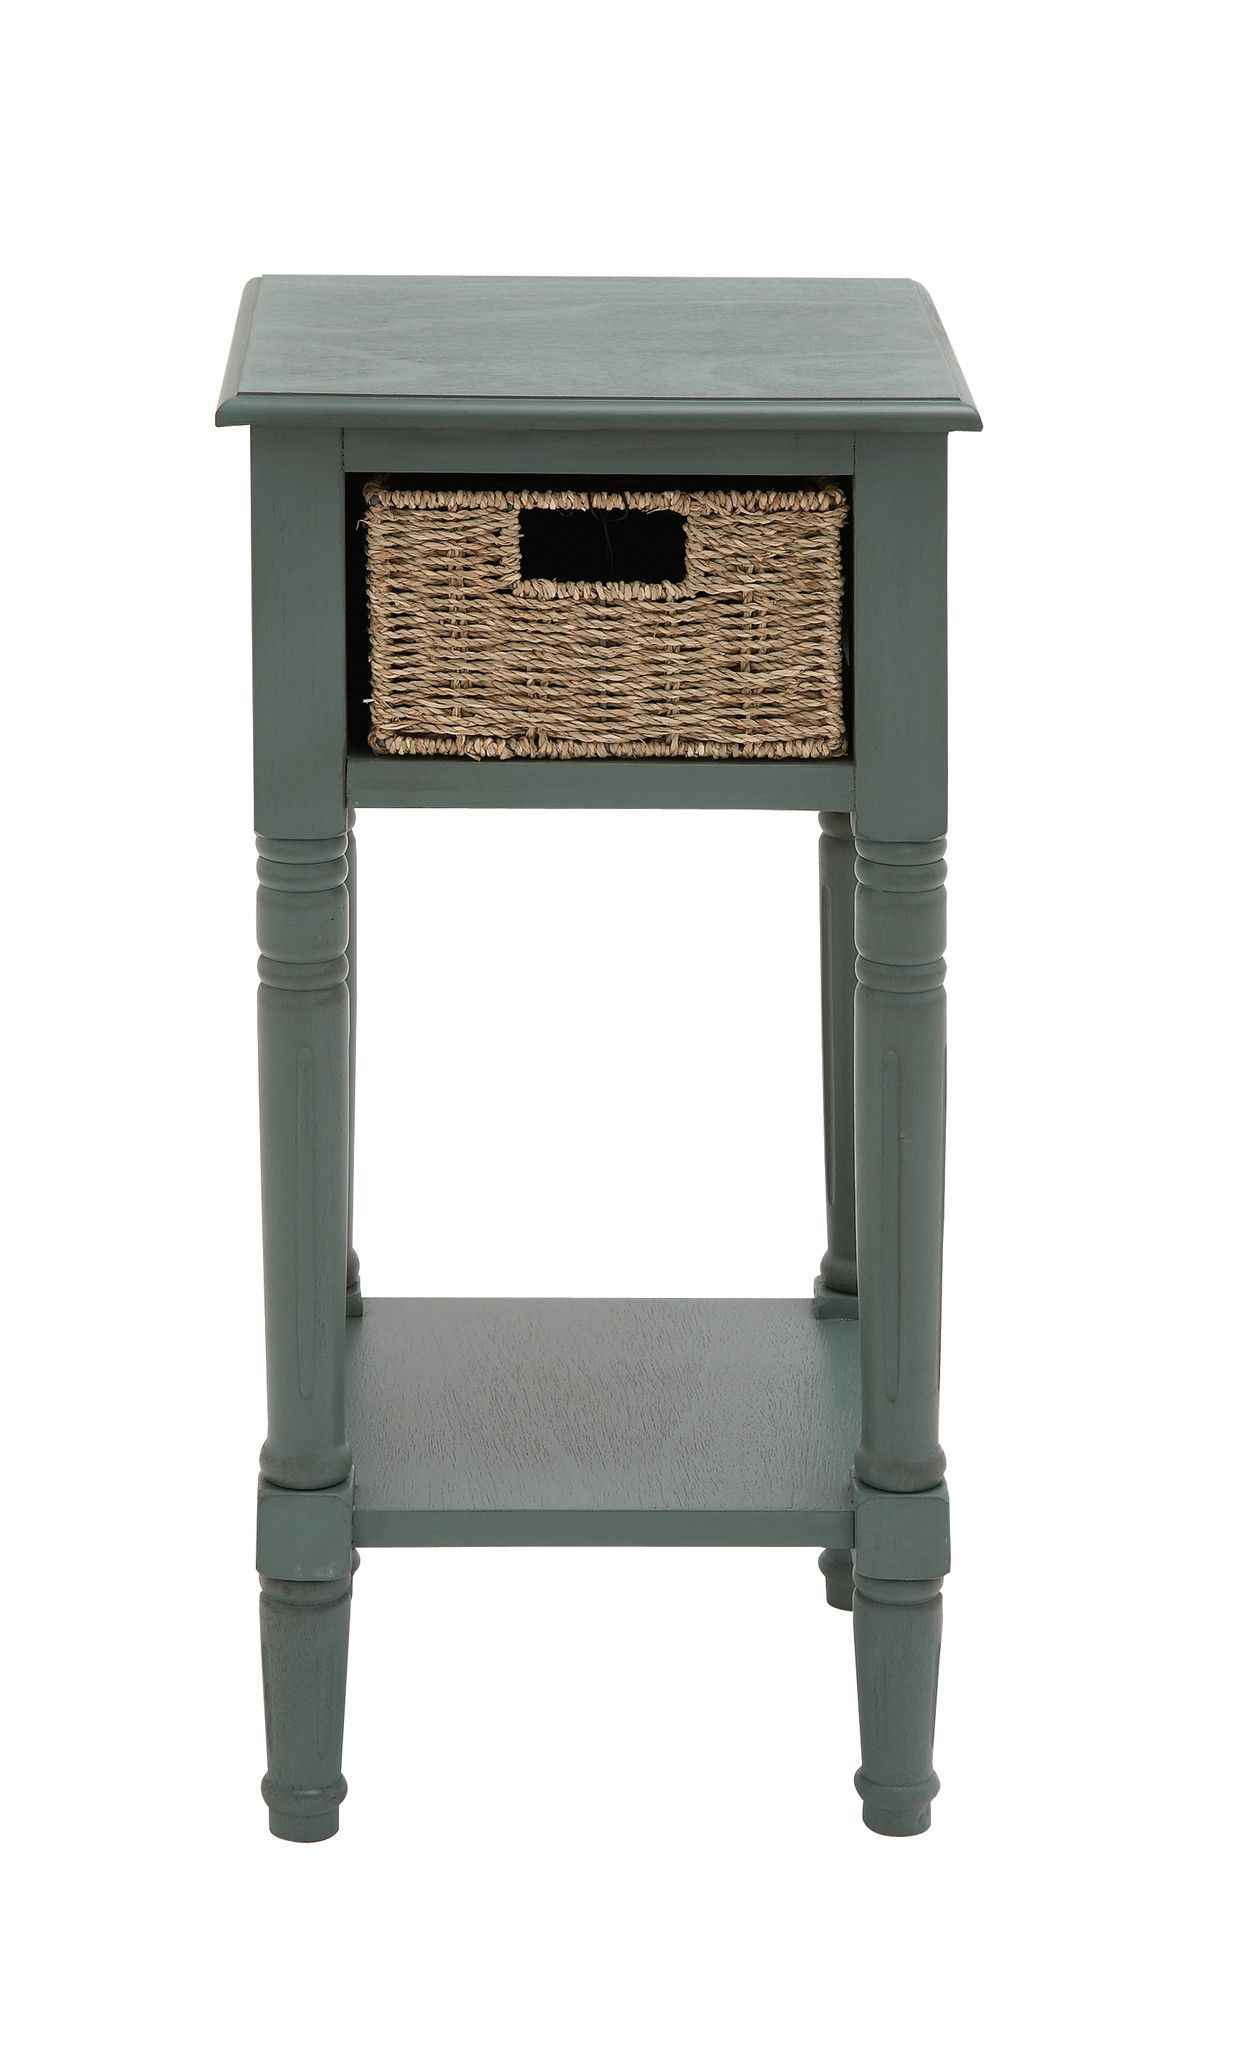 The Stony Wood Basket Accent Table